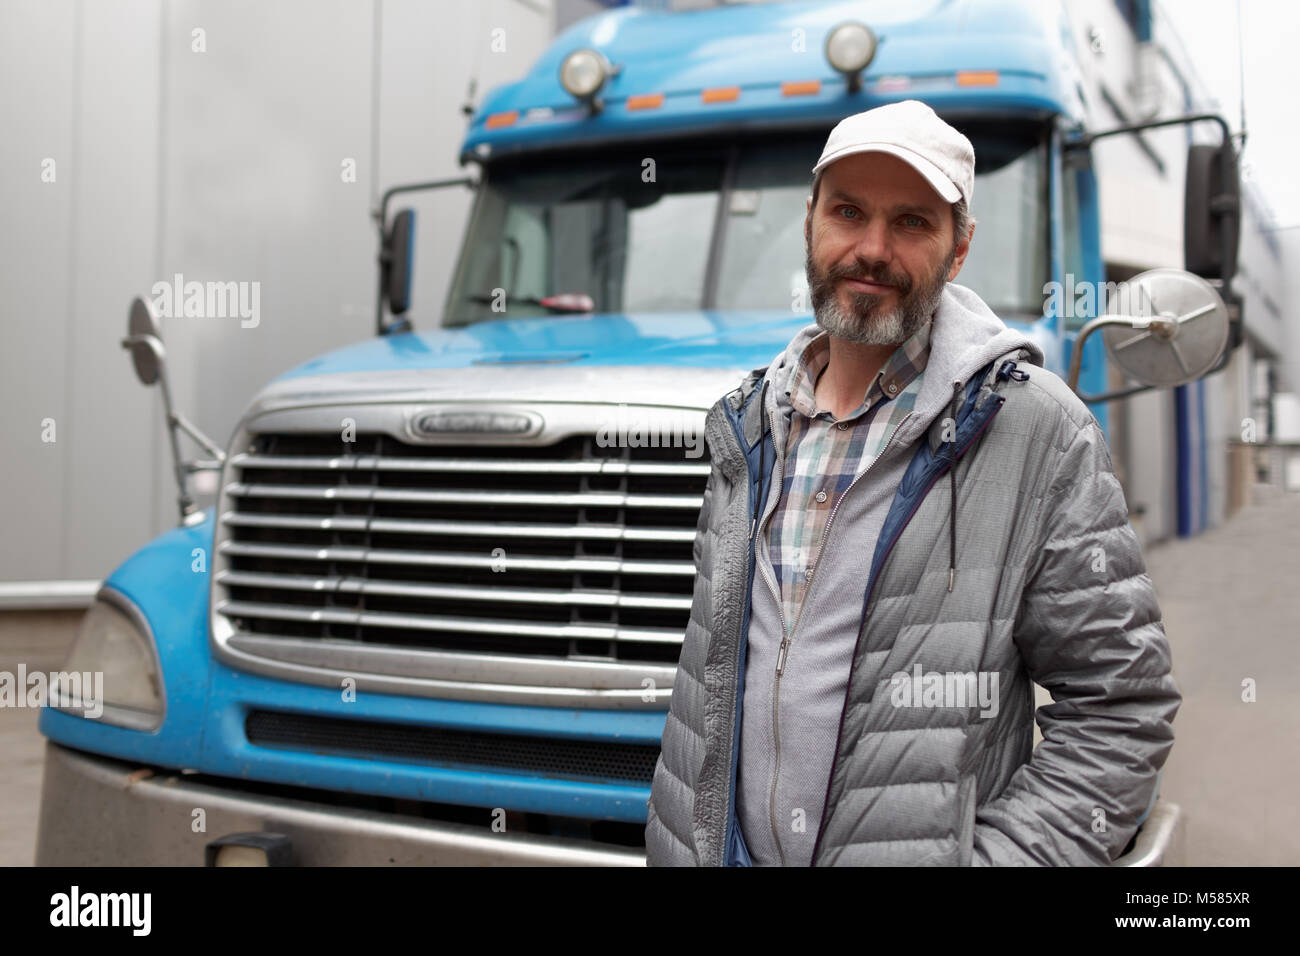 Mature bearded man against retro styled truck - Stock Image